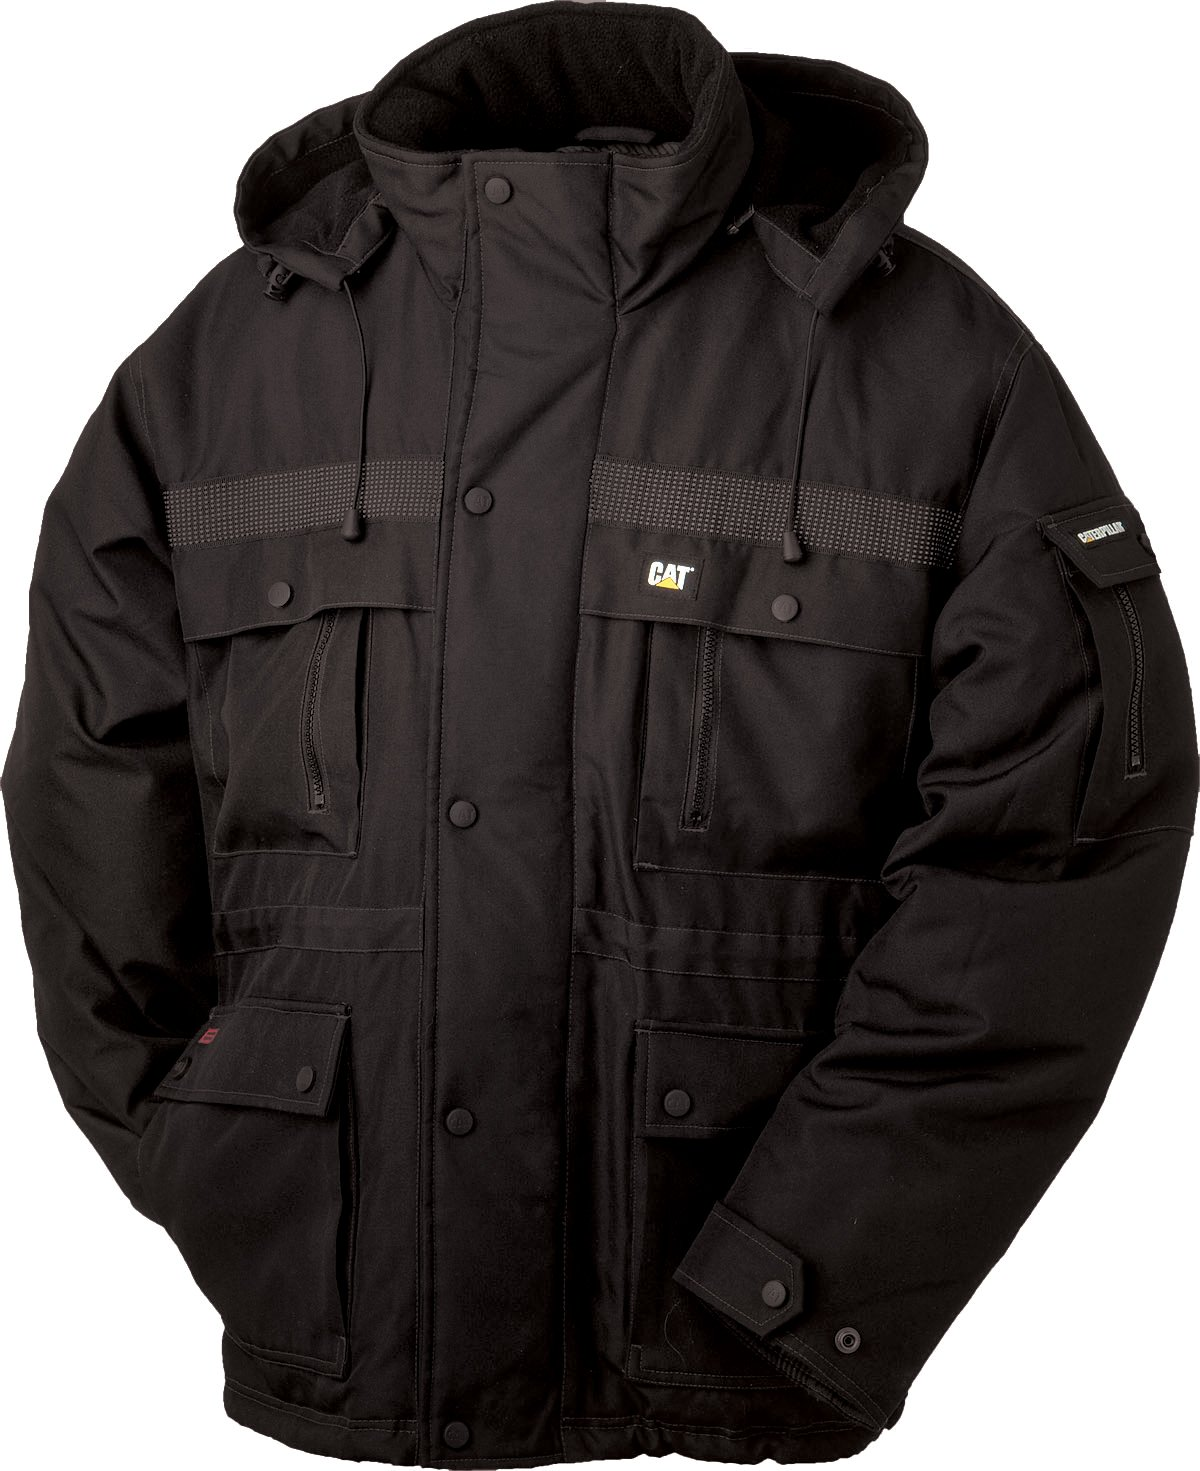 Caterpillar Men's Big Heavy Insulated Parka (Regular and Big & Tall Sizes), Black, X Large Tall by Caterpillar